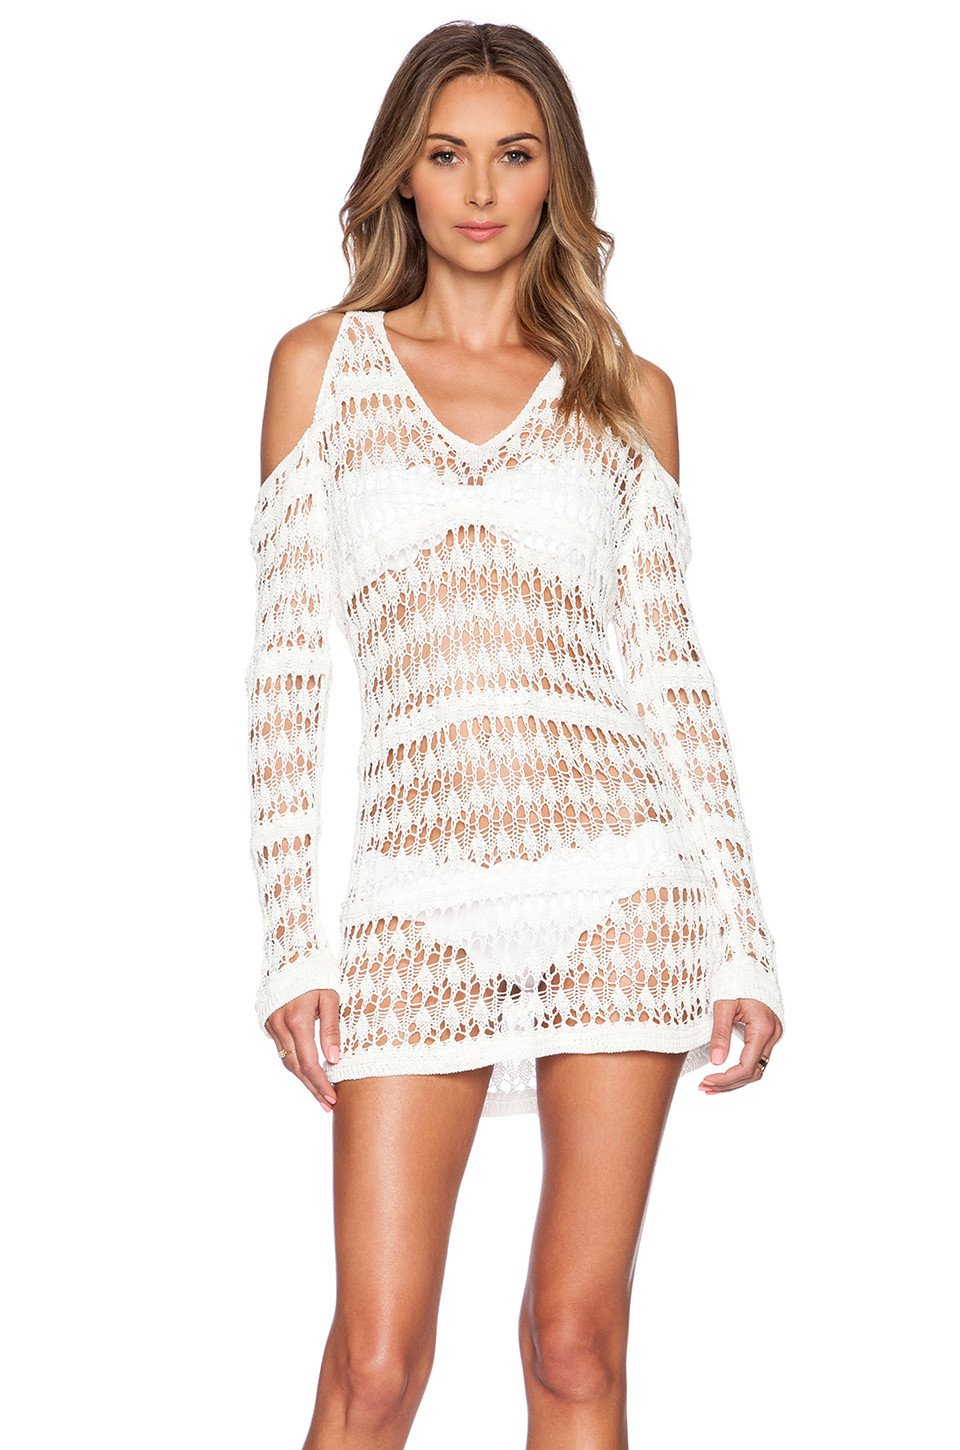 Windswept Beach Sweater - Kustom Label - 1